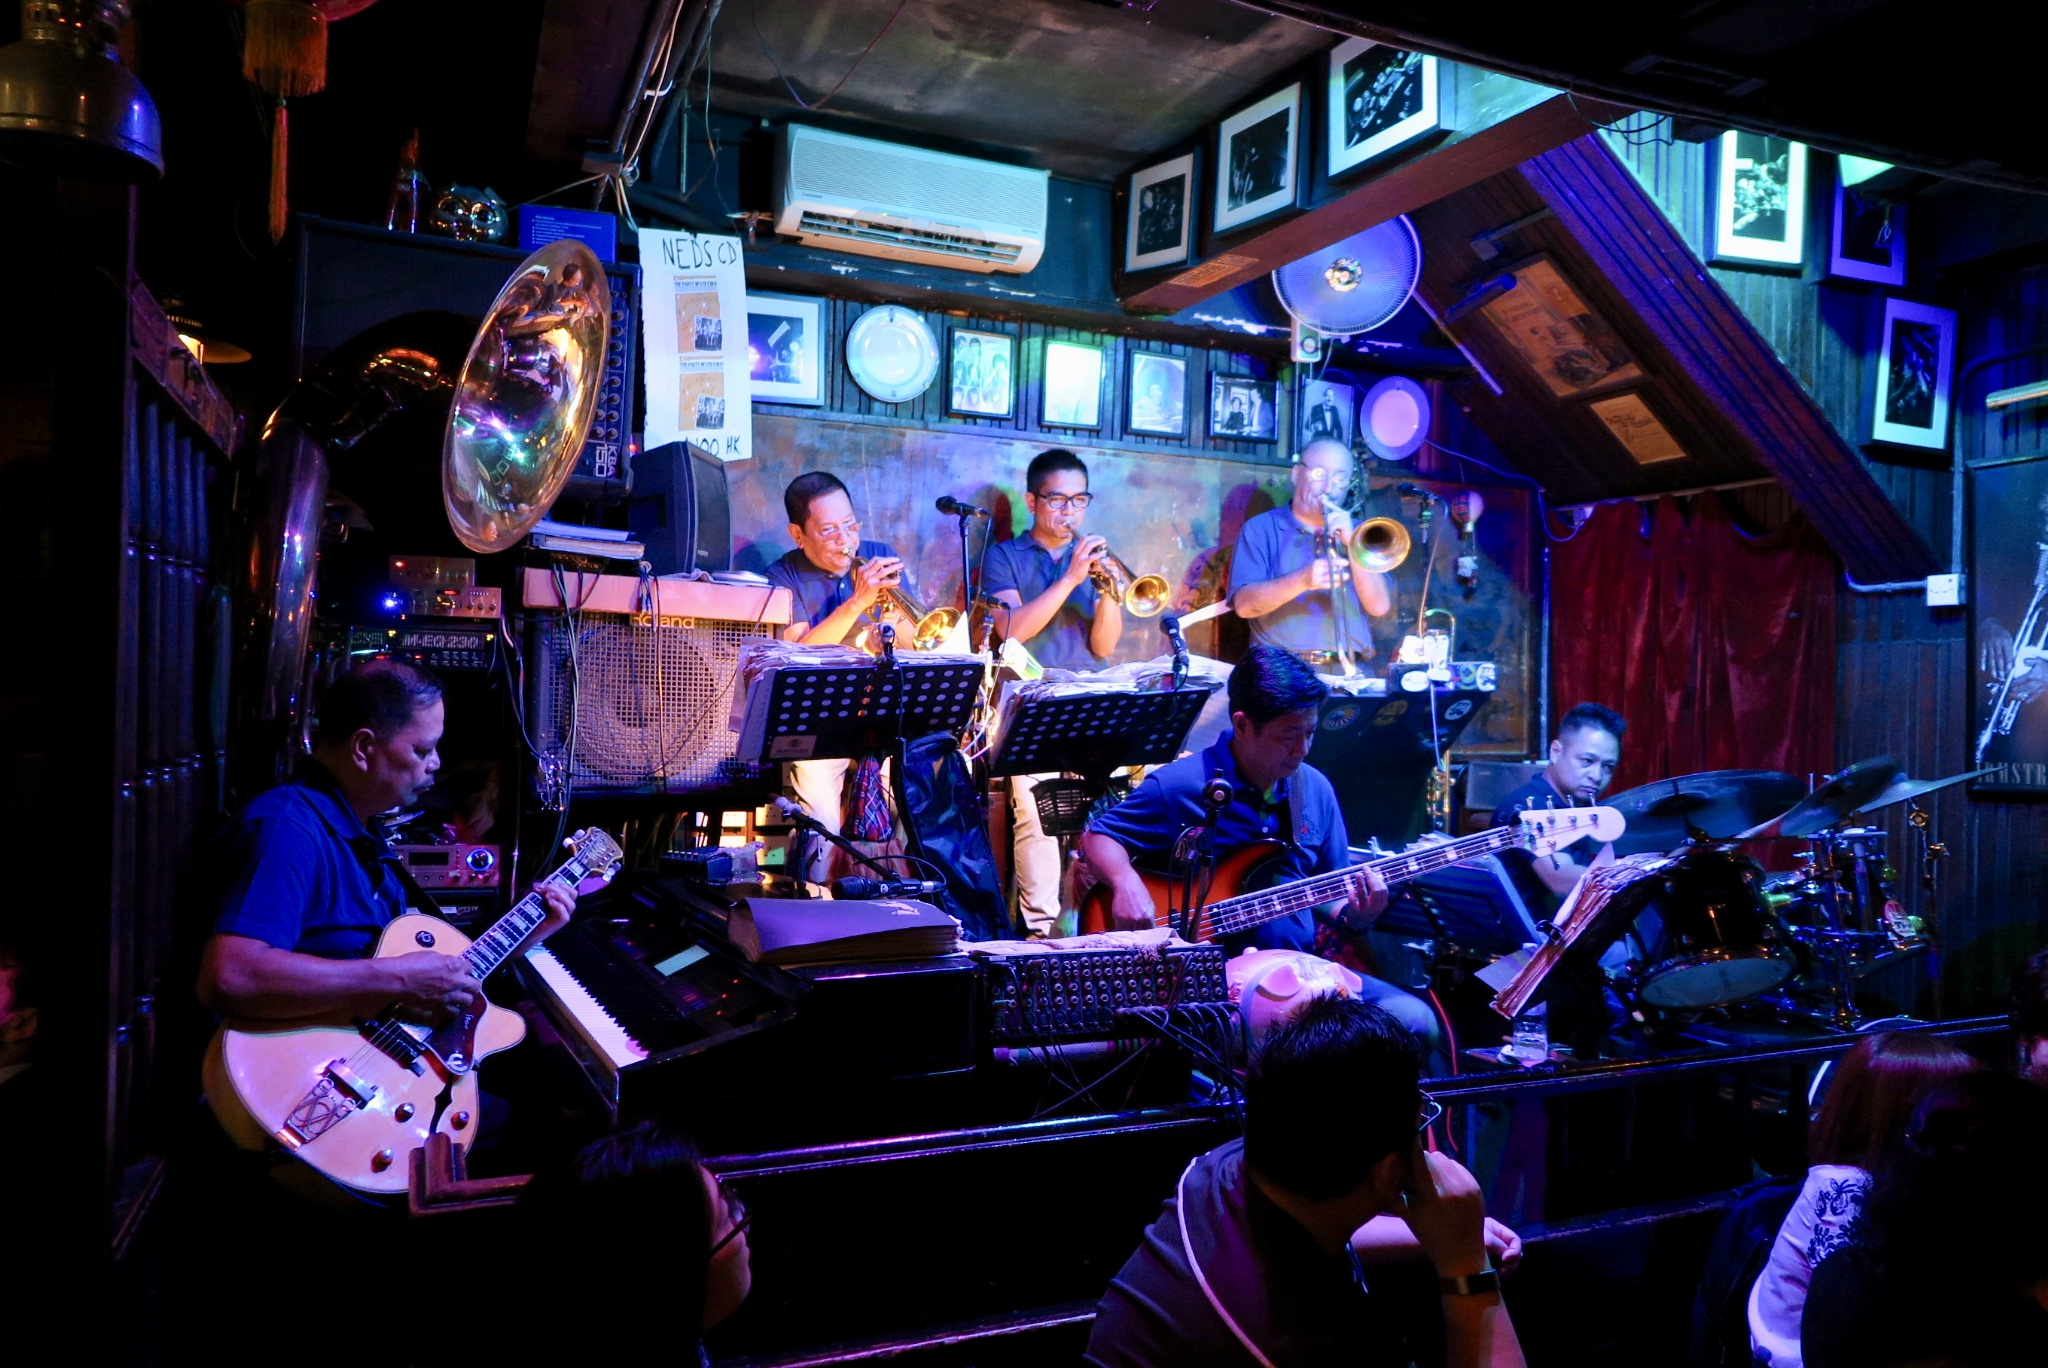 The jazz band at Ned Kelly's Last Stand in Tsim Sha Tsui,Kowloon